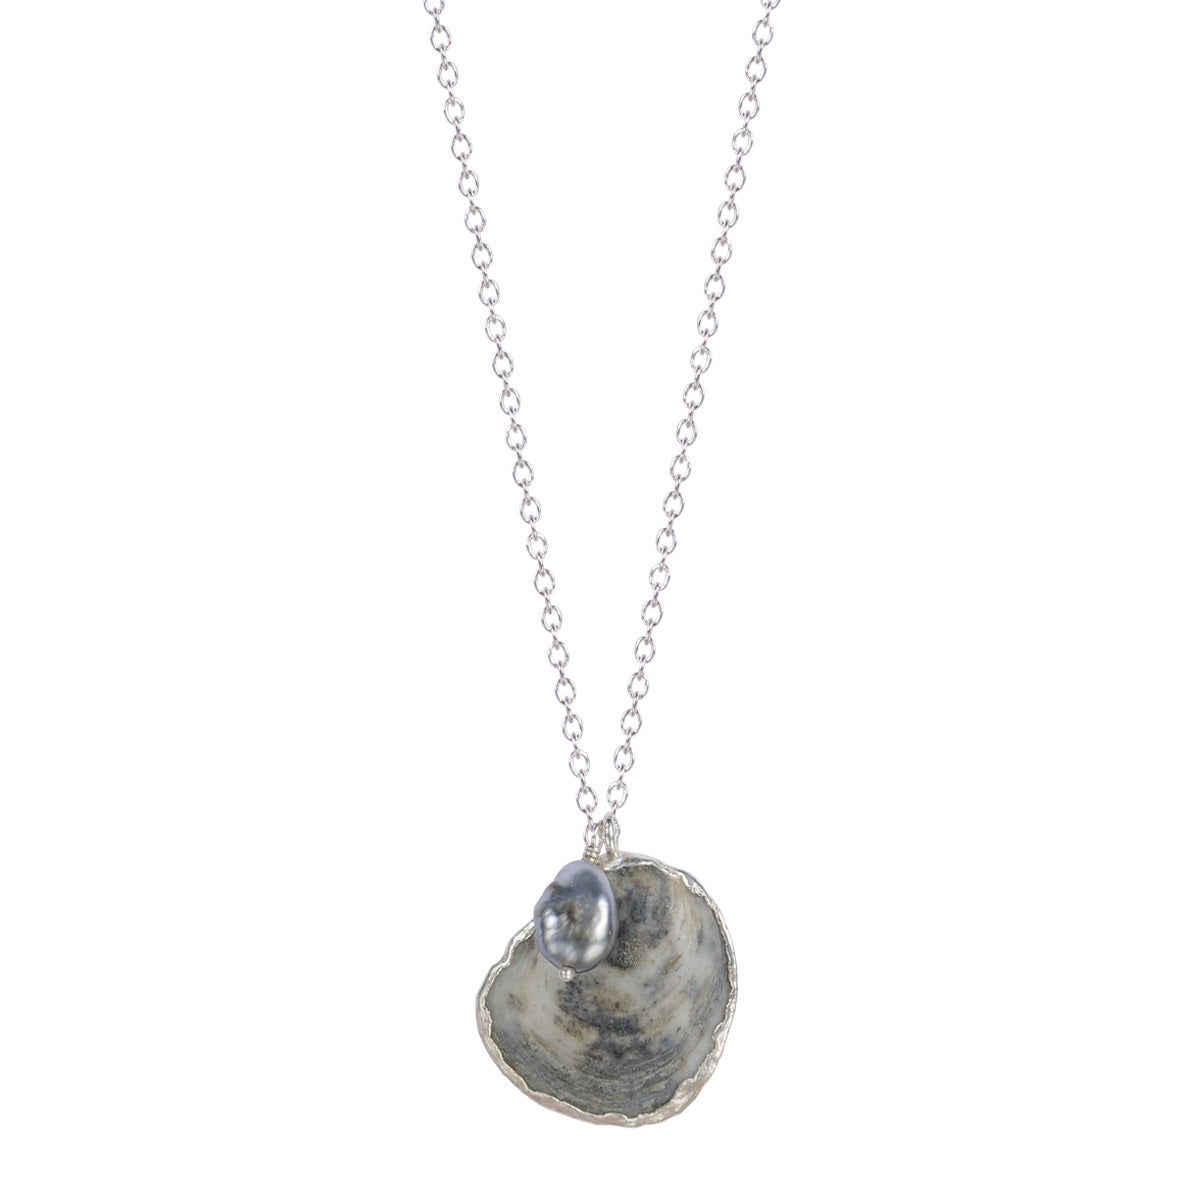 Silver Jingle Shell Necklace with Tahitian Pearl on Chain